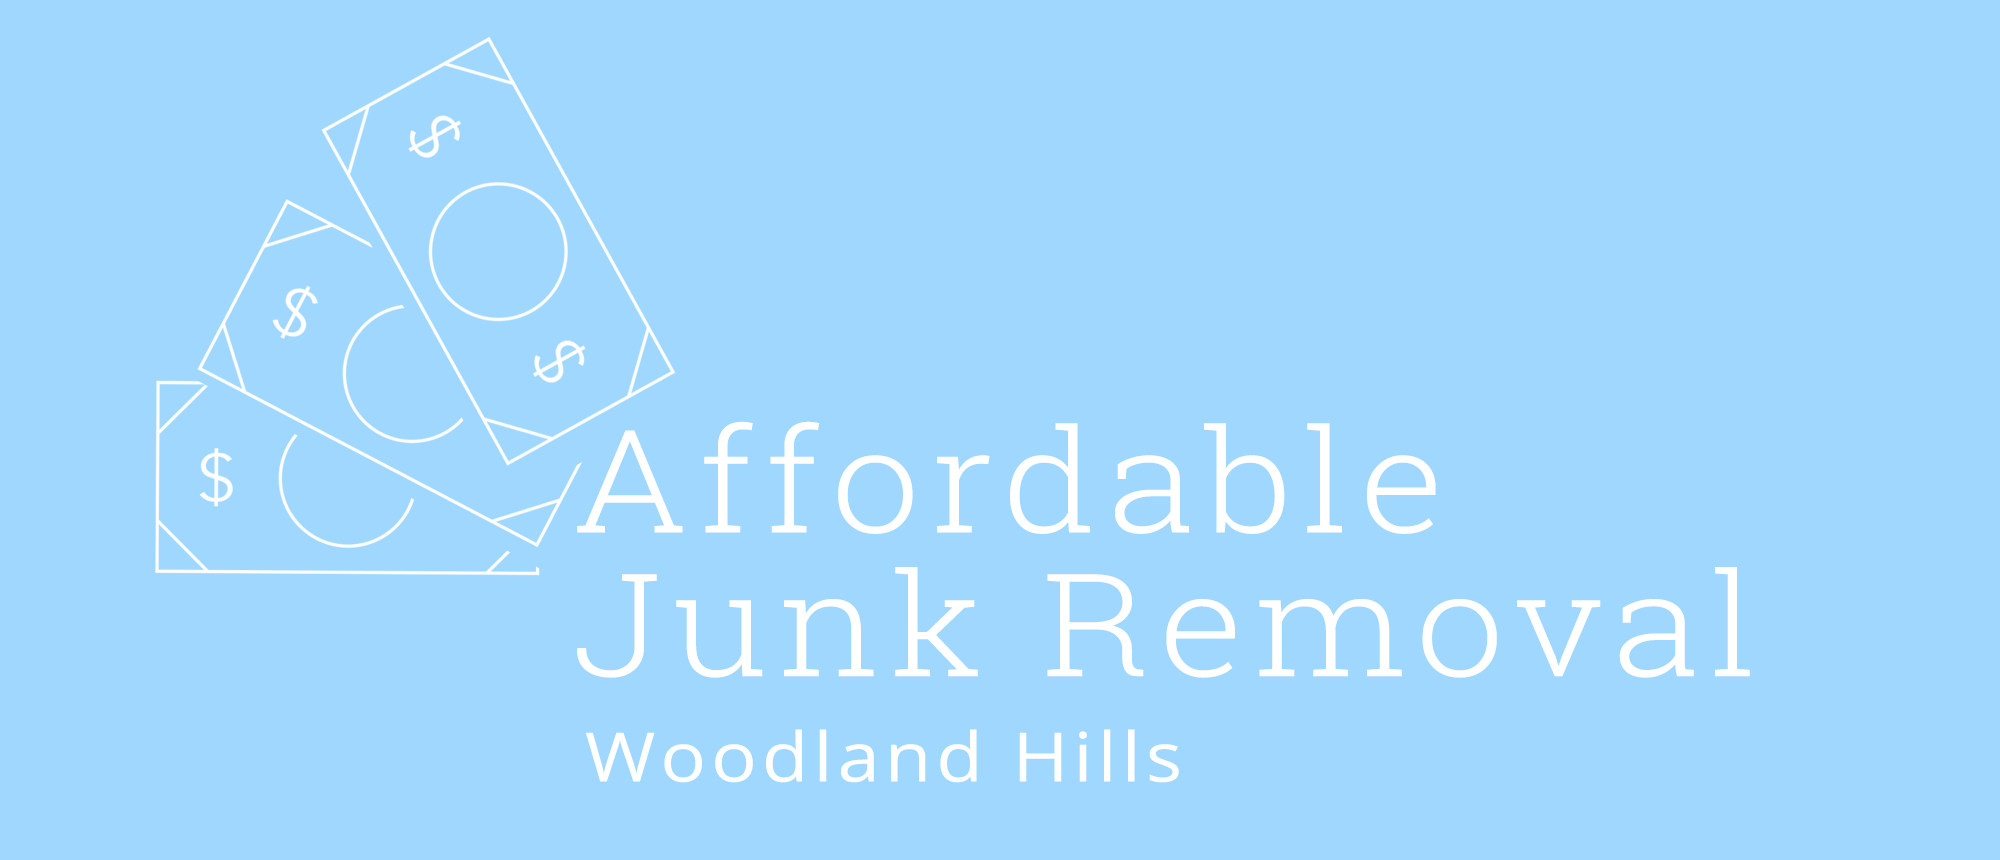 junk removal woodland hills